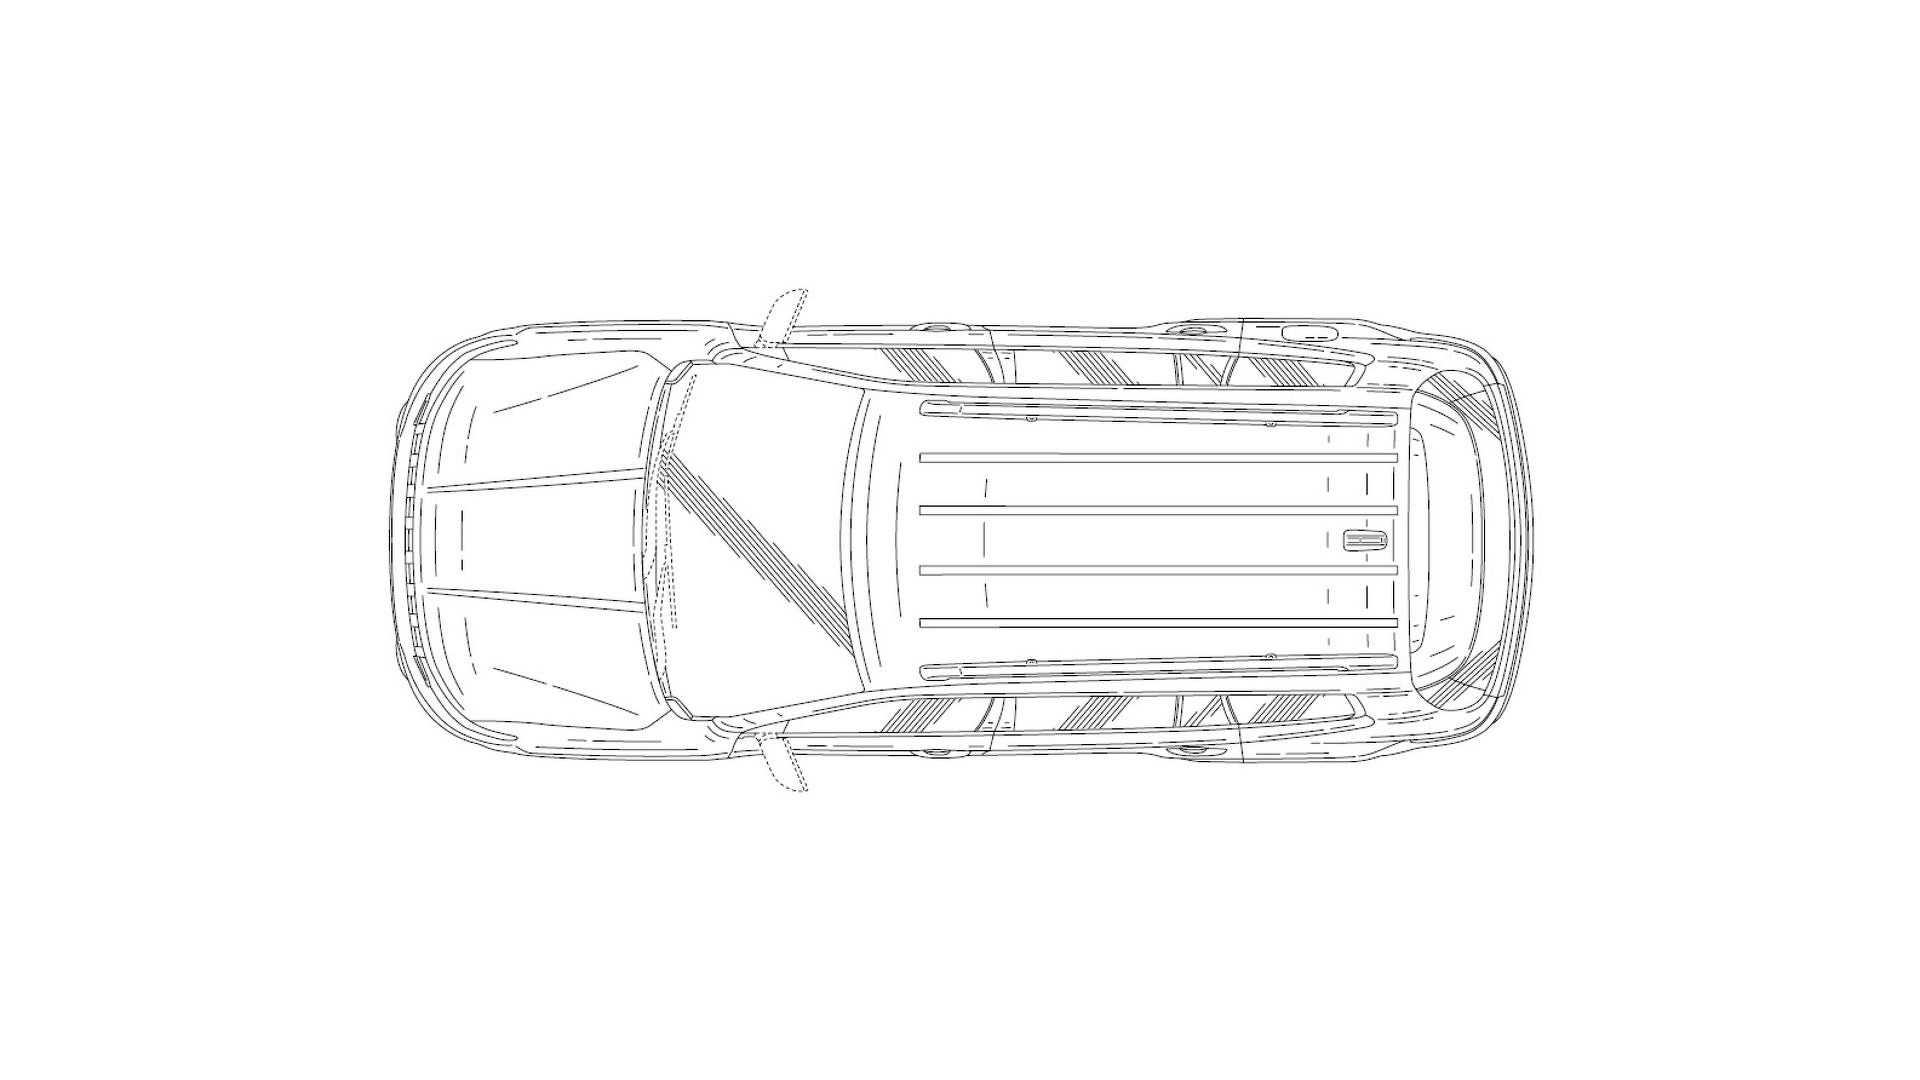 jeep patent drawings show 7